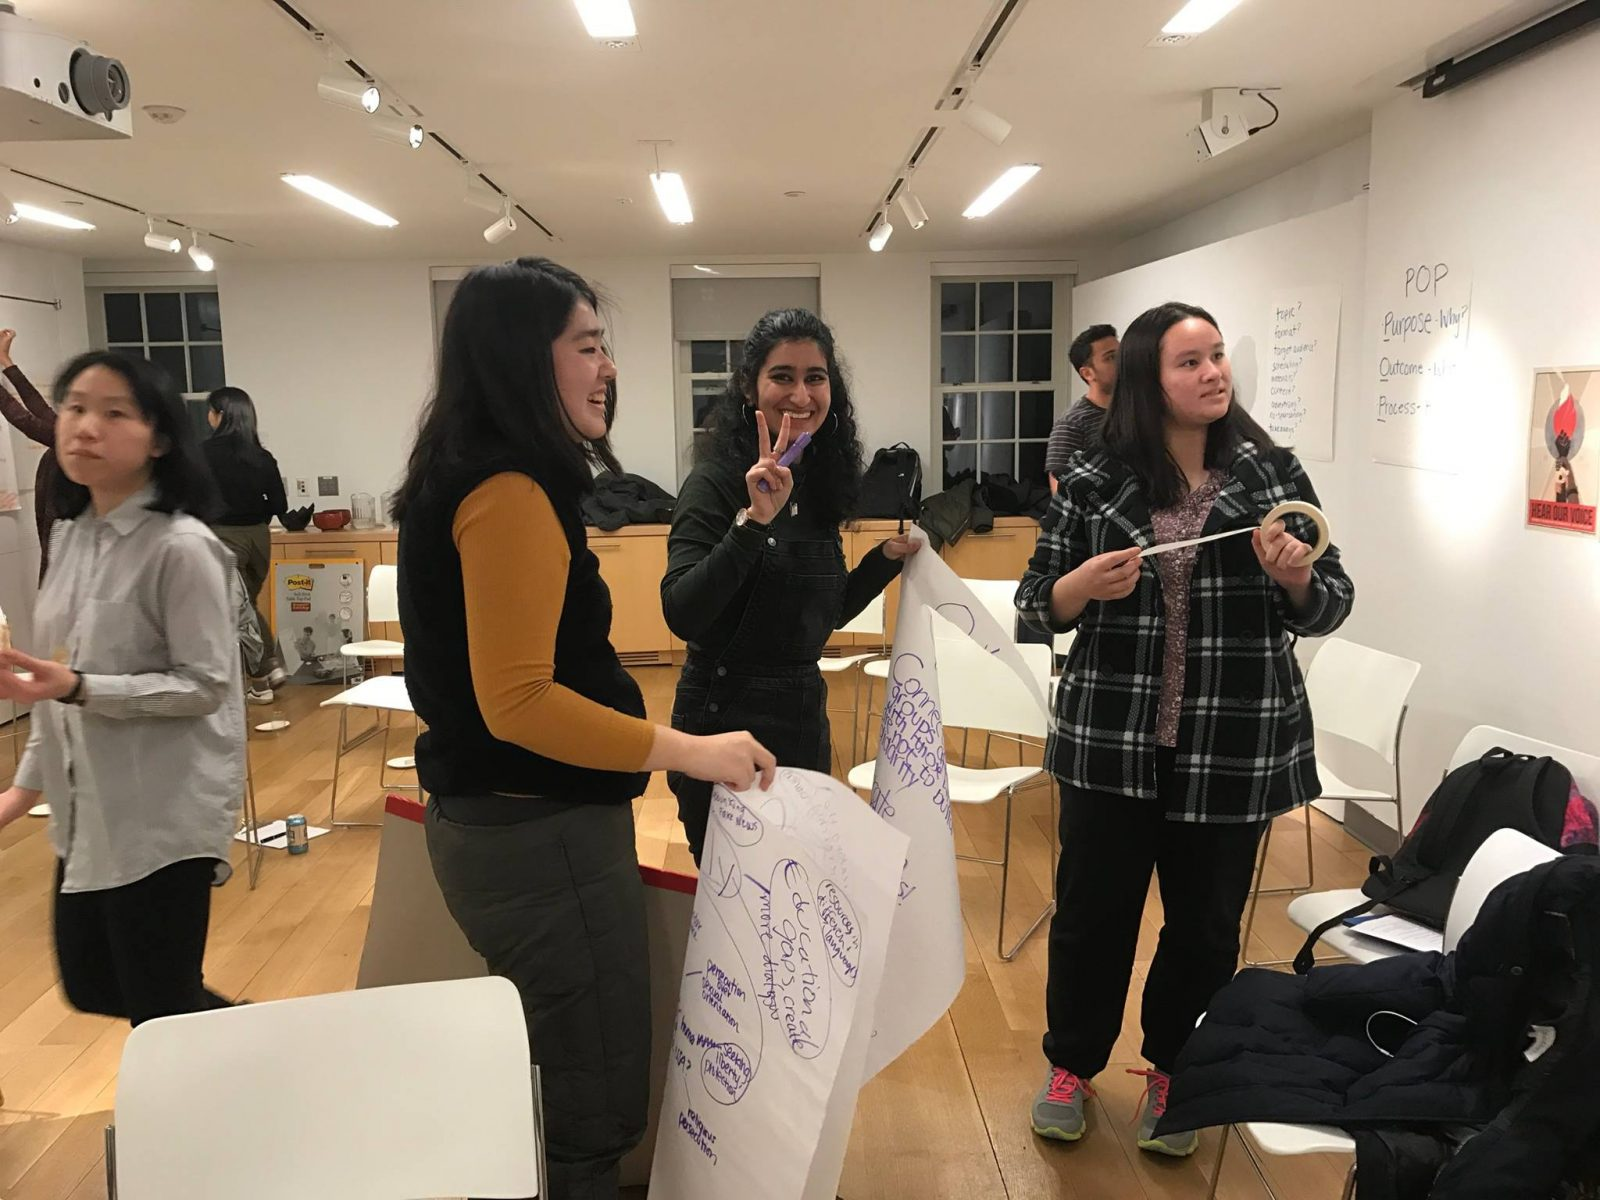 Students at a collaborative workshop brainstorming on large pieces of paper